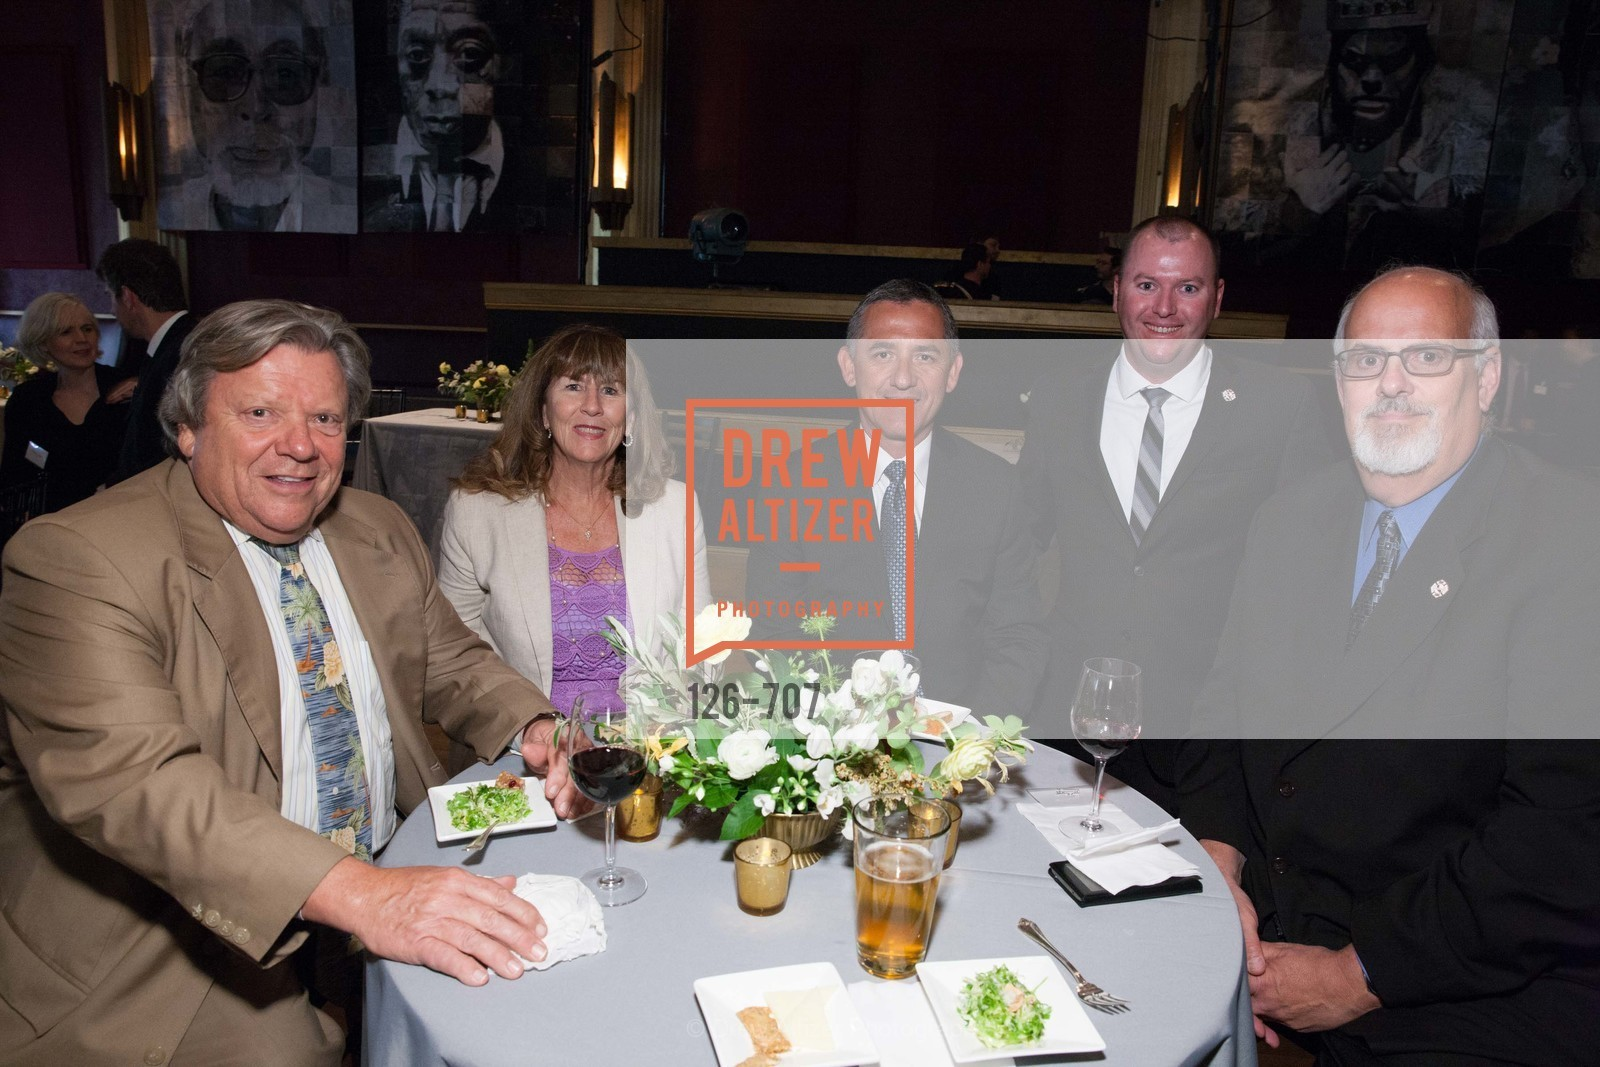 Aaron Read, Cathi Read, Mike Lopez, Pat Griffith, Tom Gardner, OAKLAND SCHOOL FOR THE ARTS Gala 2015 with Governor Jerry Brown, US, May 8th, 2015,Drew Altizer, Drew Altizer Photography, full-service agency, private events, San Francisco photographer, photographer california